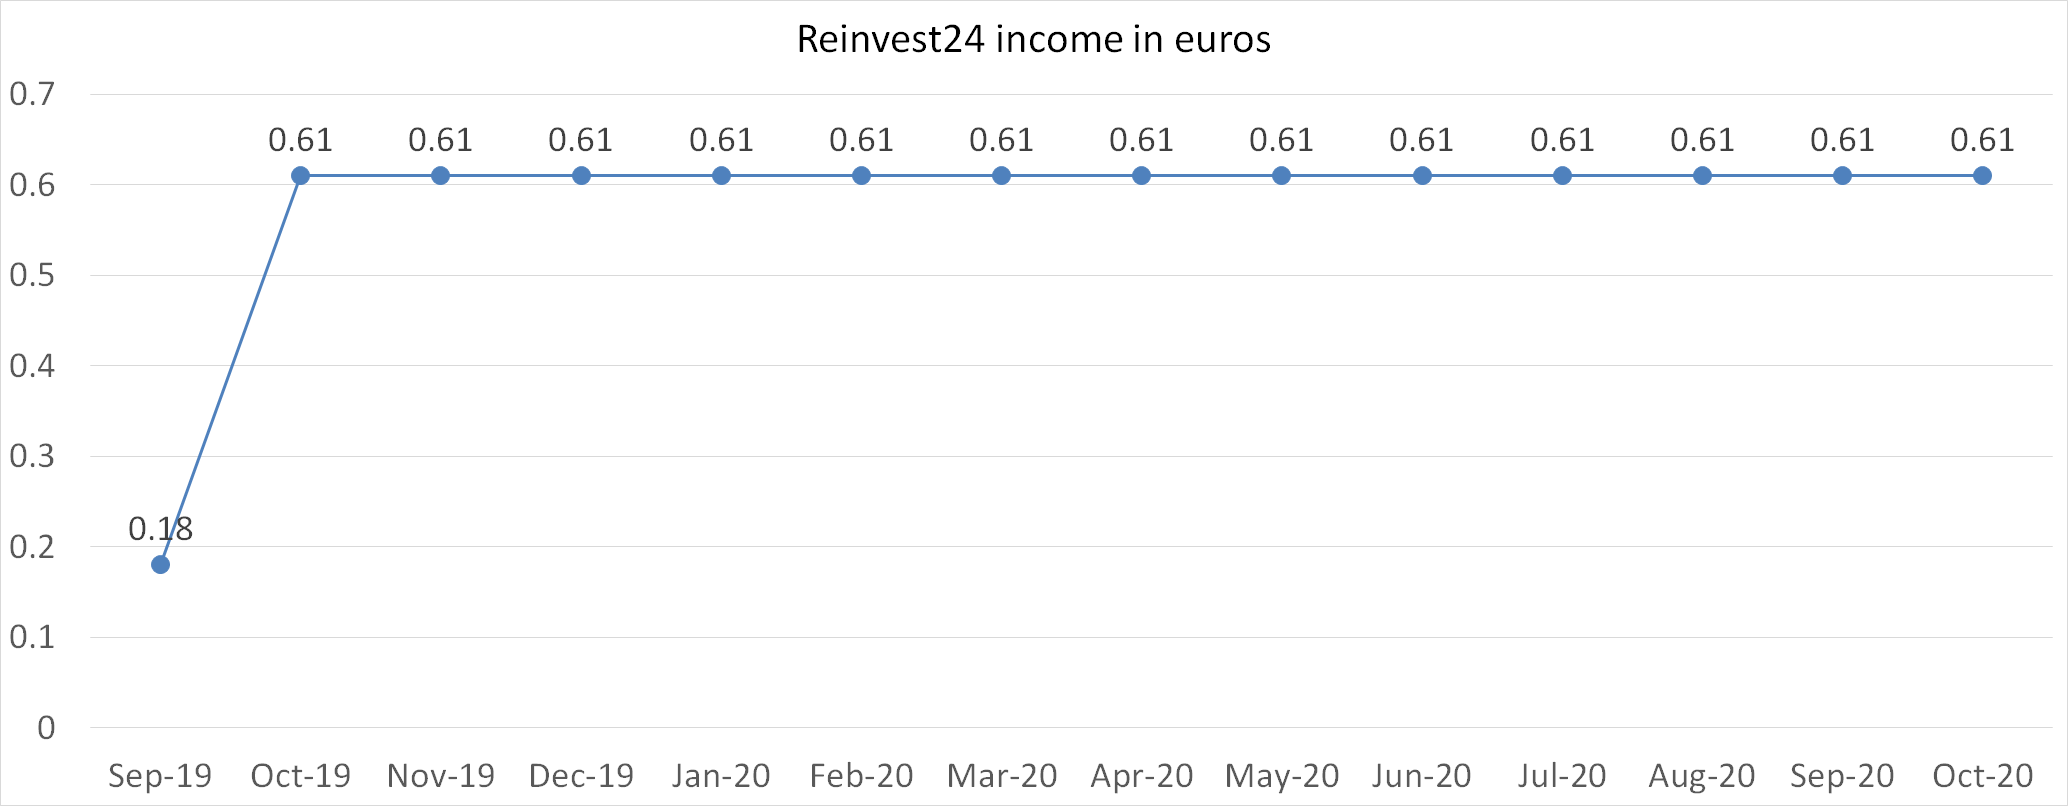 Reinvest24 interest income in euros october 2020